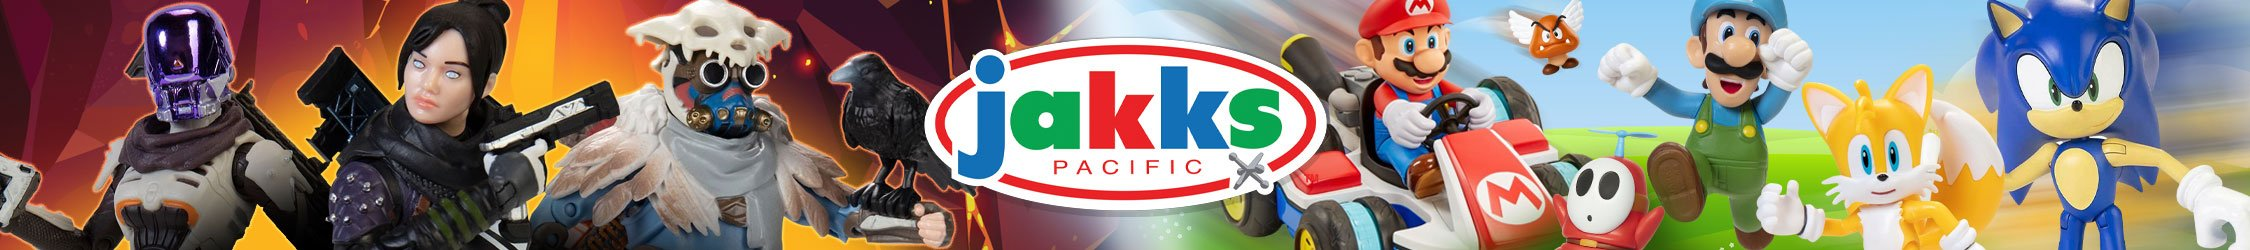 jakkspacific